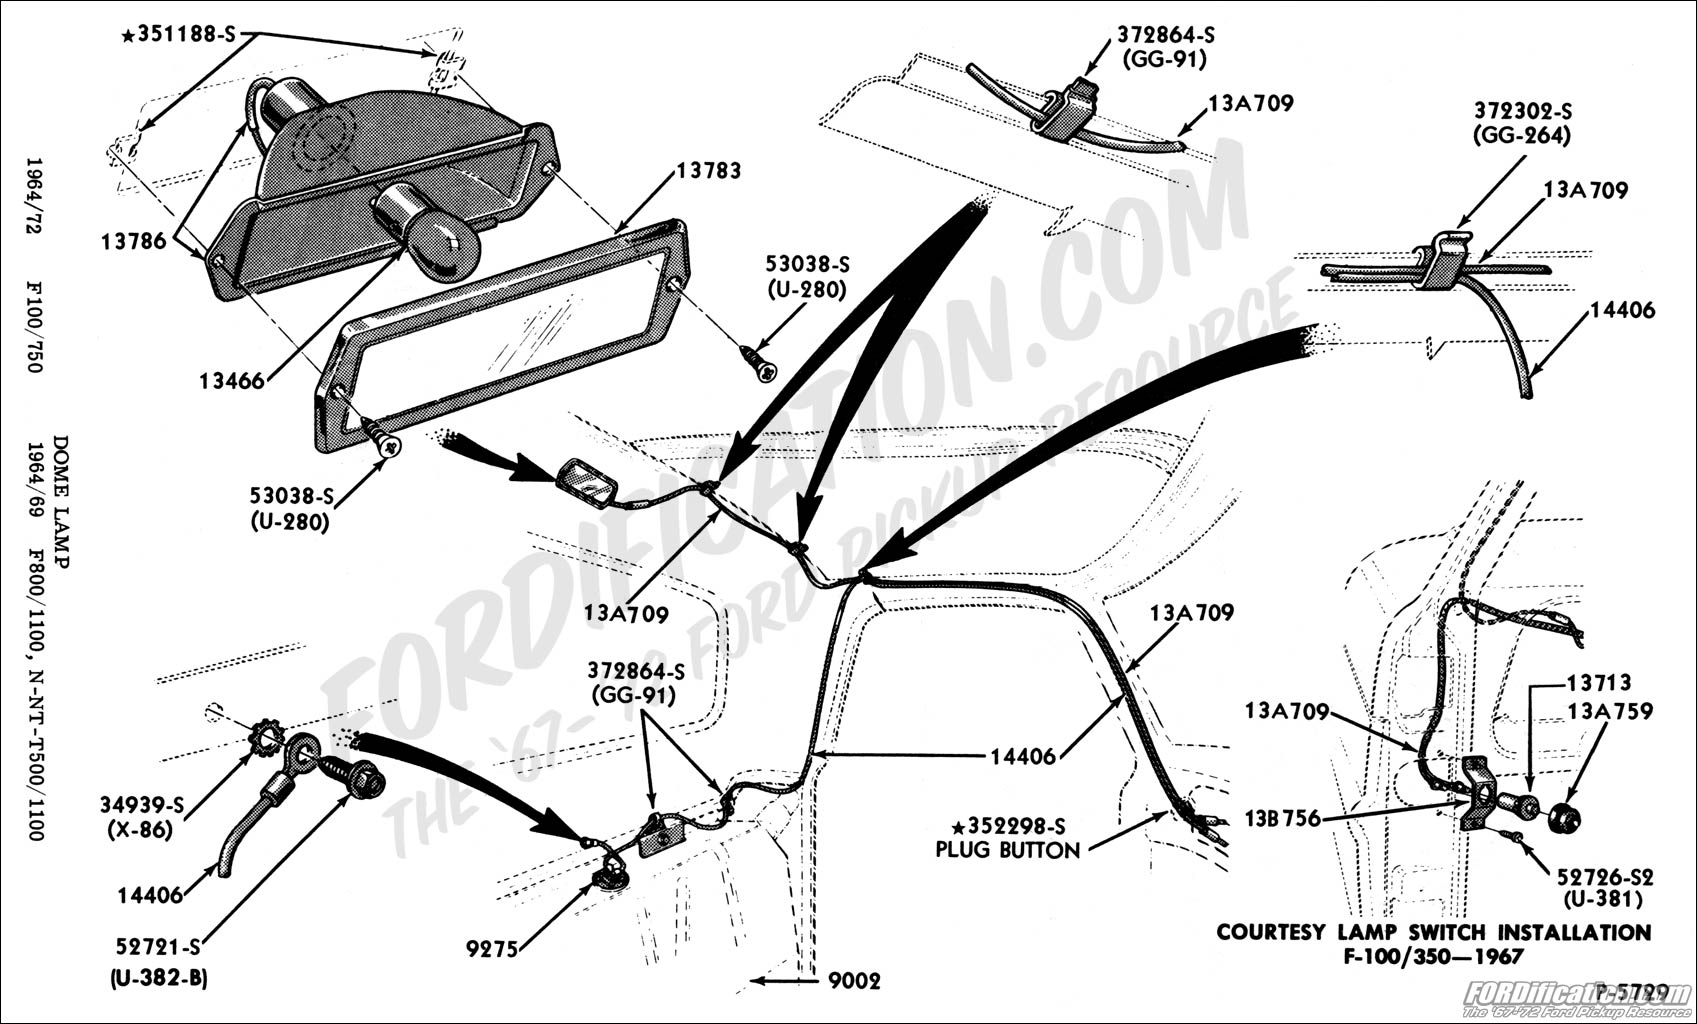 Chevy Silverado Sd Sensor Location moreover 6o6uq Check Eng Light On P0155 Says Upstream Bank furthermore 265730 together with 2012 F550 Dome Light Wiring Diagram furthermore Wiper Motor Location On 2013 Chevy Silverado. on 1971 chevy suburban wiring diagram